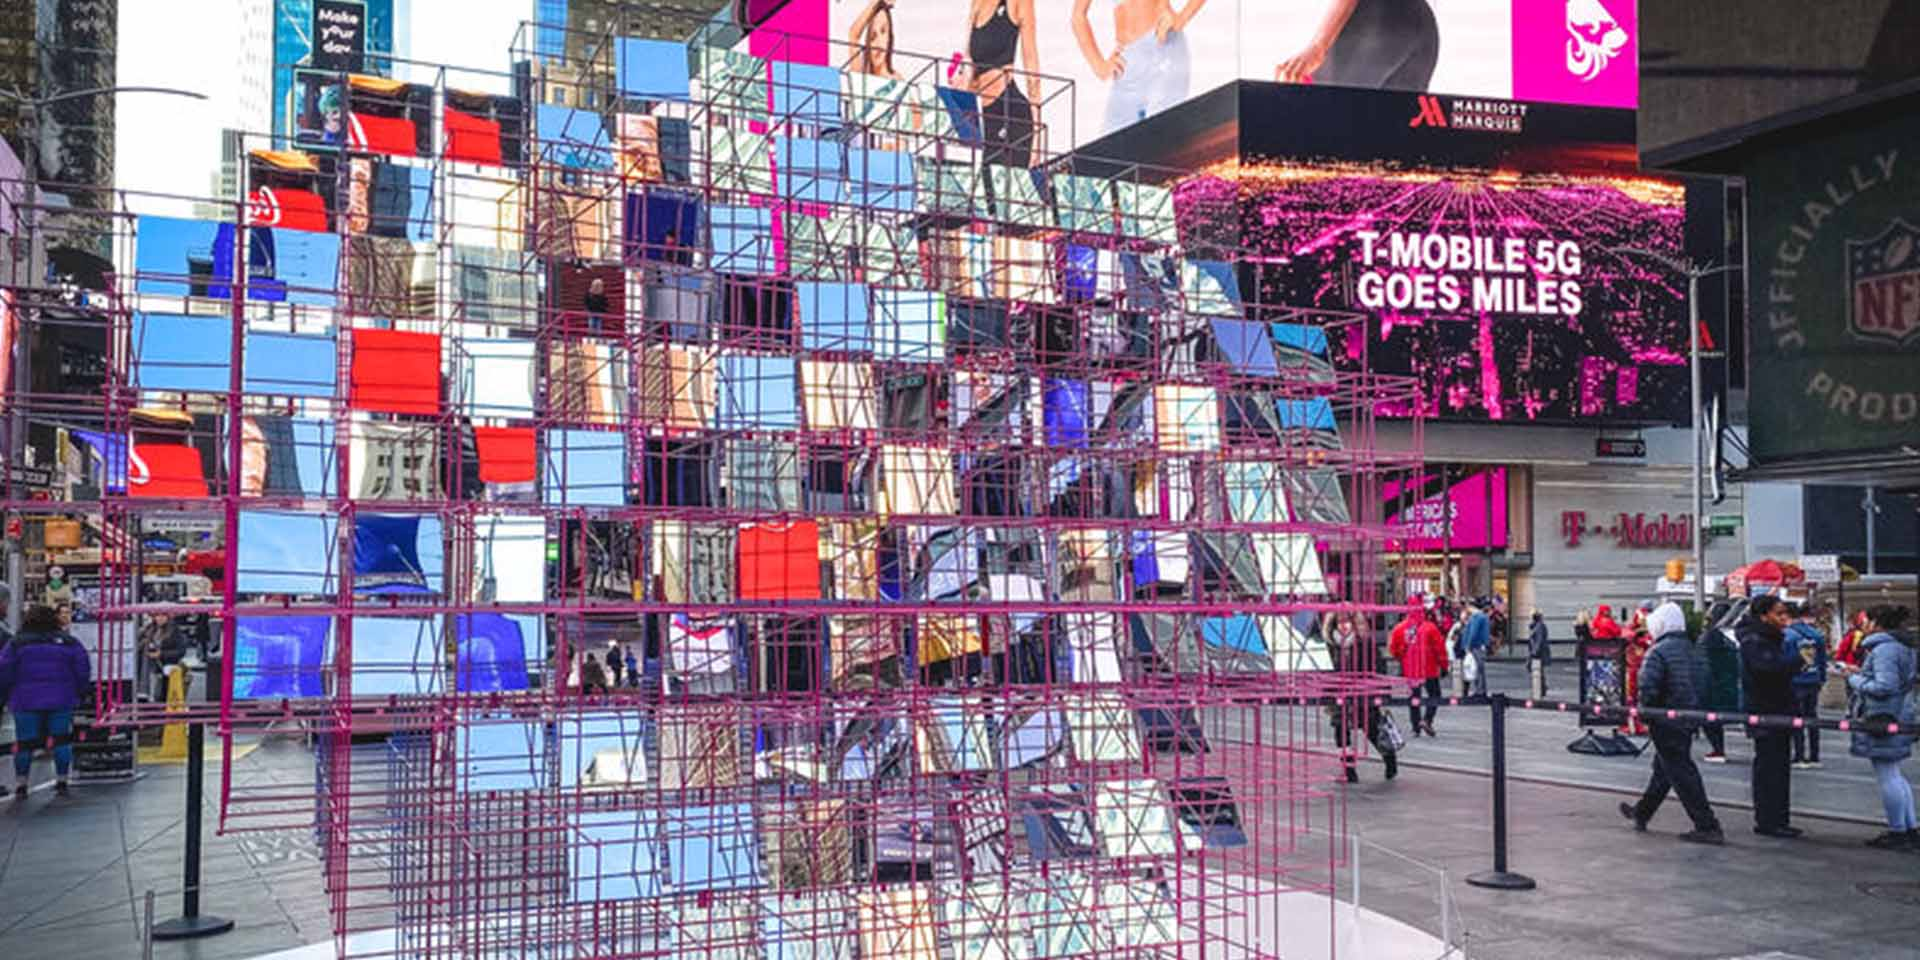 Valentine's Day Heart Design at Times Square